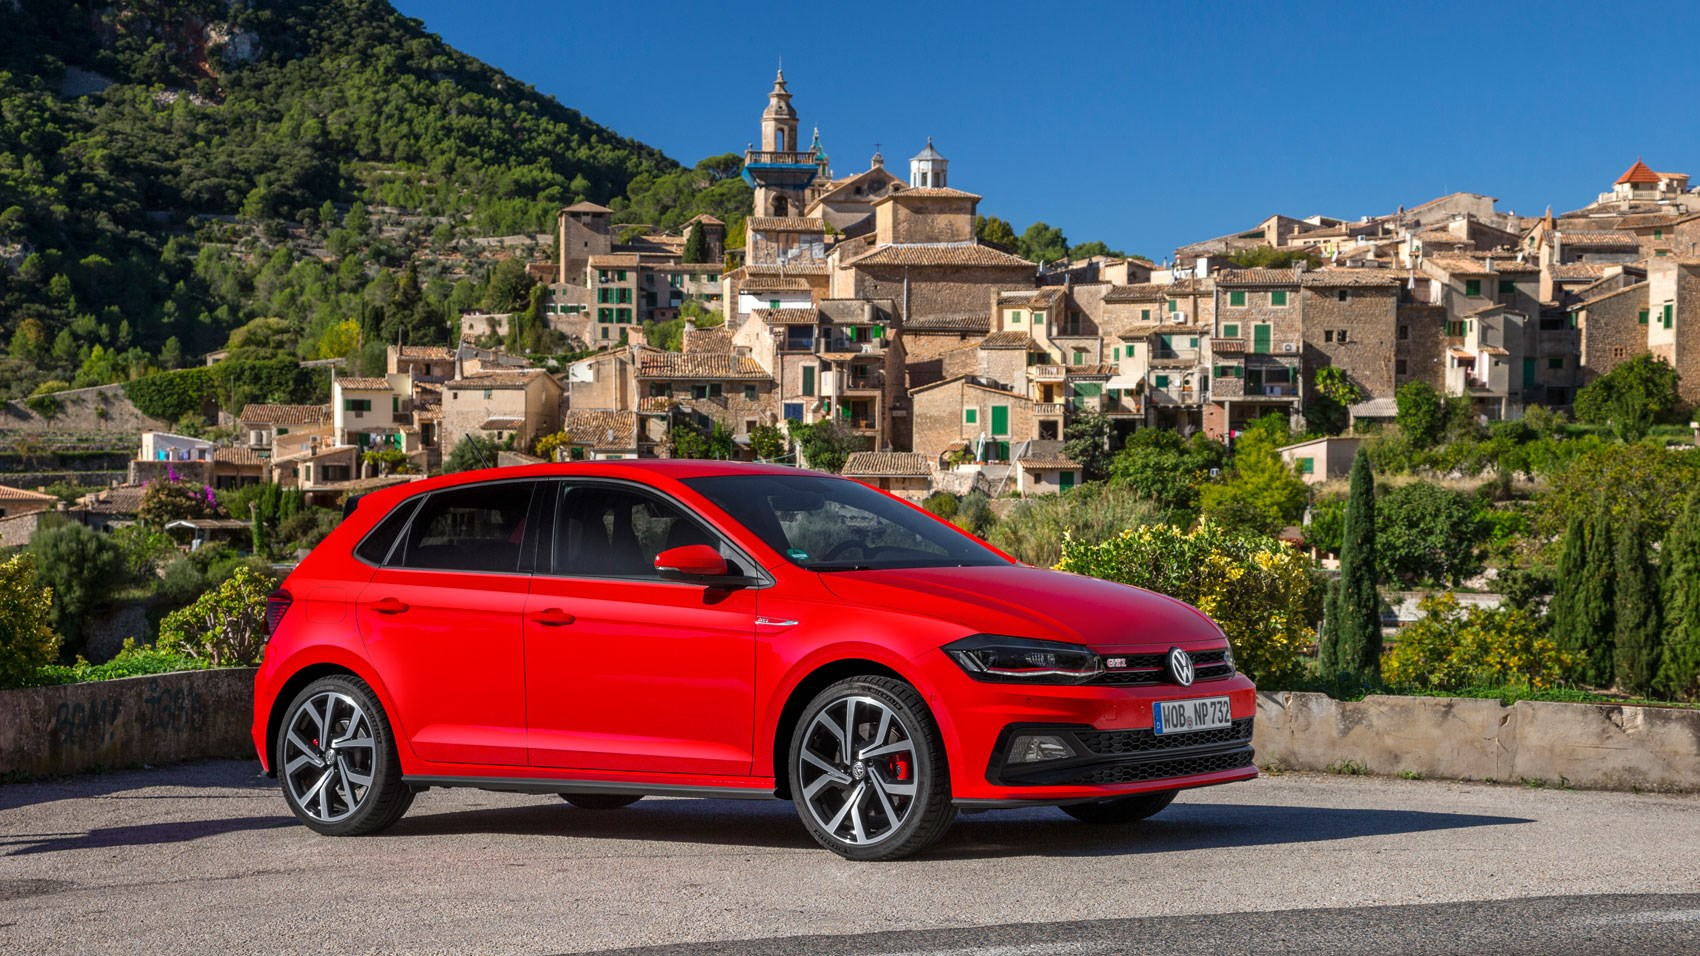 New 2018 VW Polo review by CAR magazine: prices, specs, dimensions and more